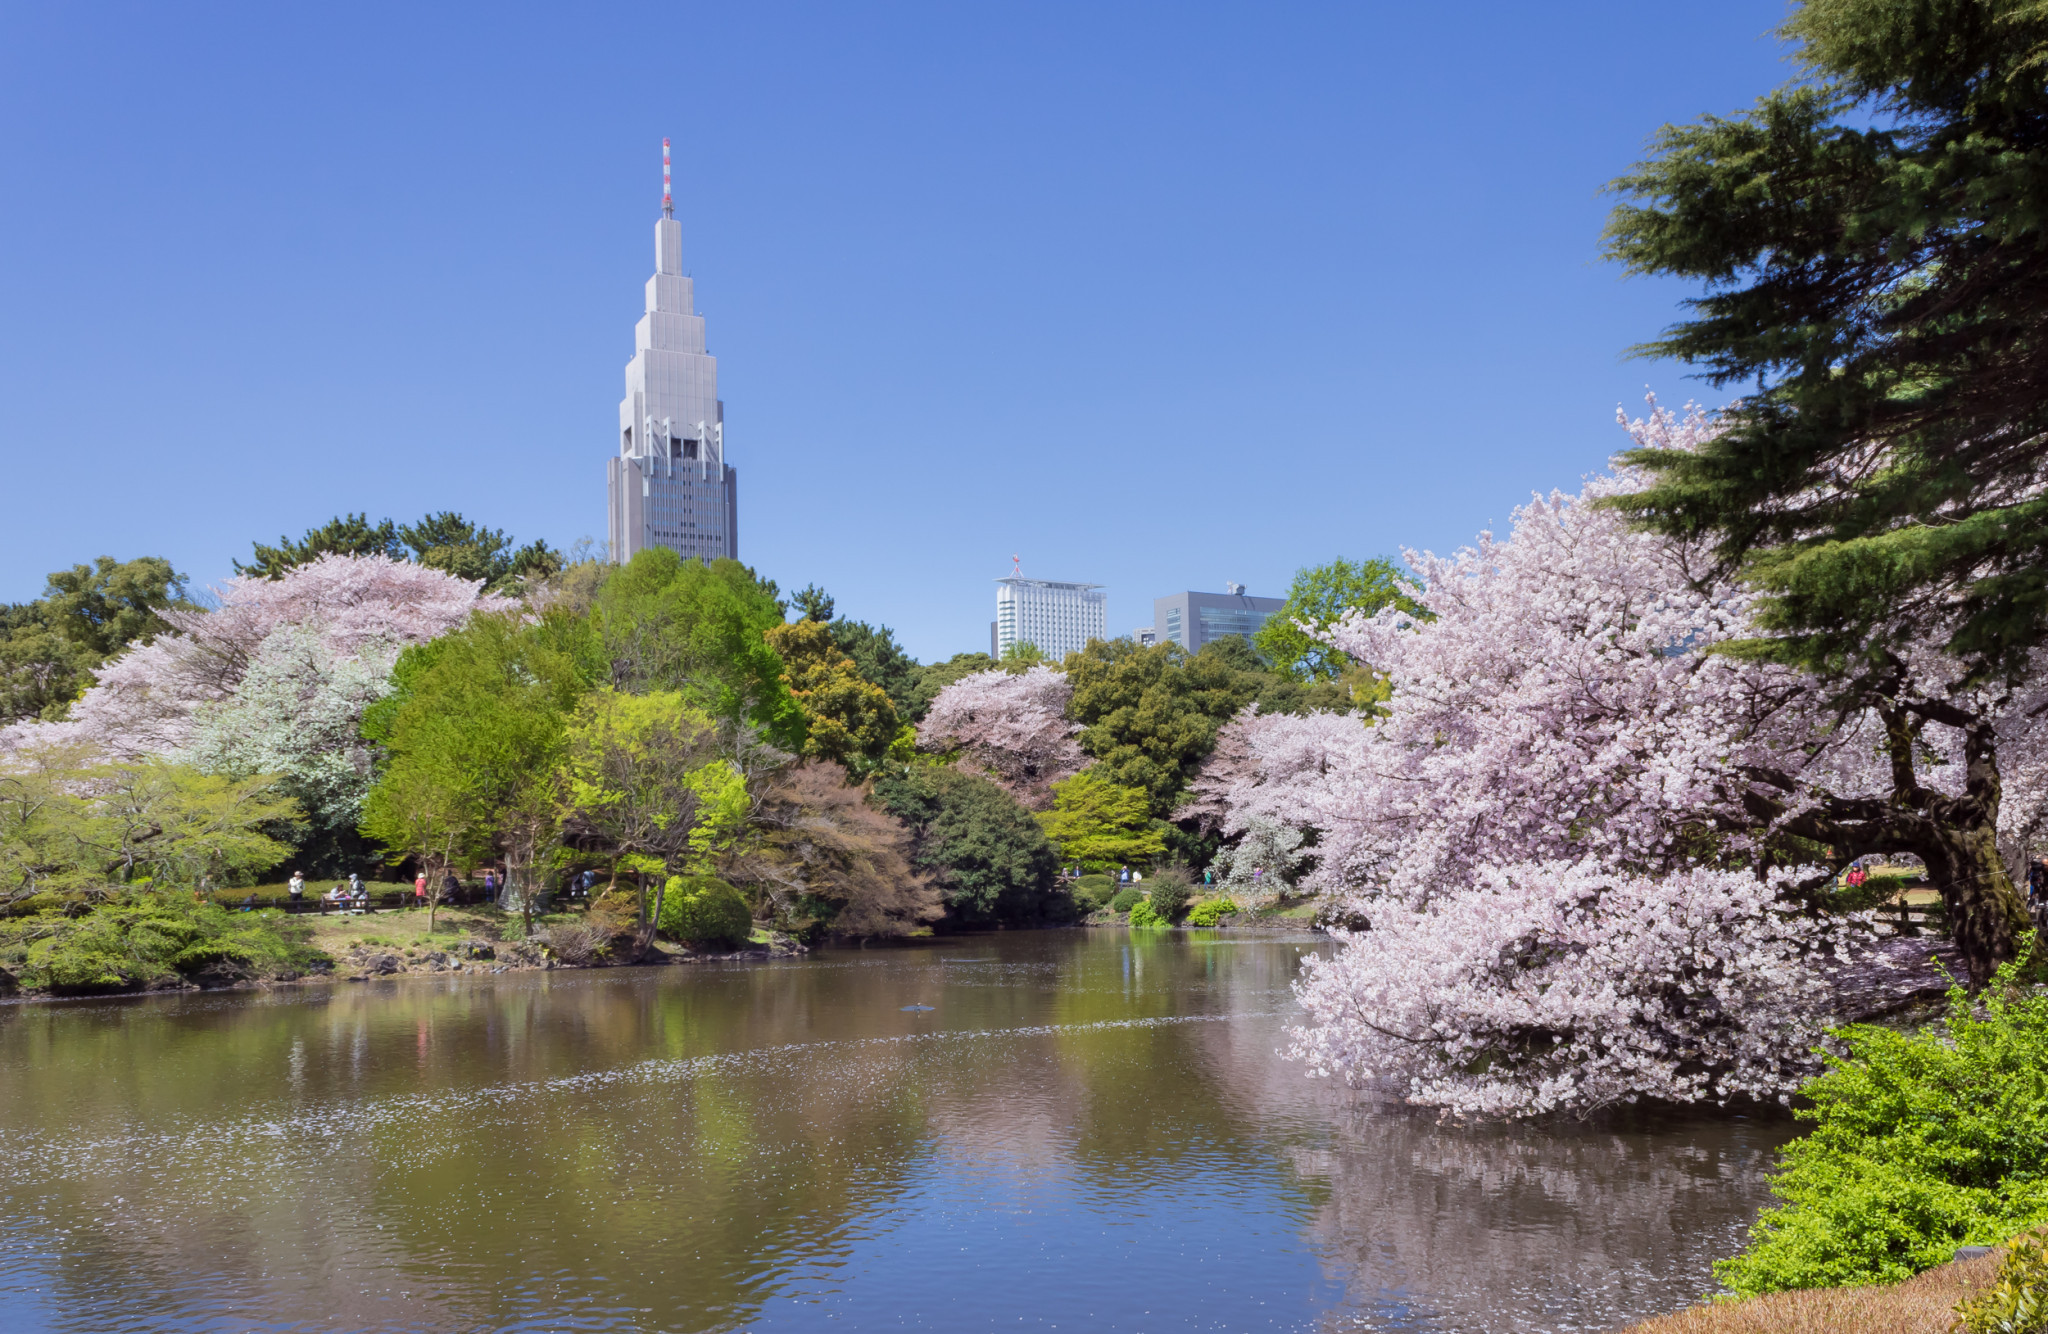 The festival will take place in the Landscape Garden at Shinjuku Gyoen National Garden in Tokyo ©Wikipedia